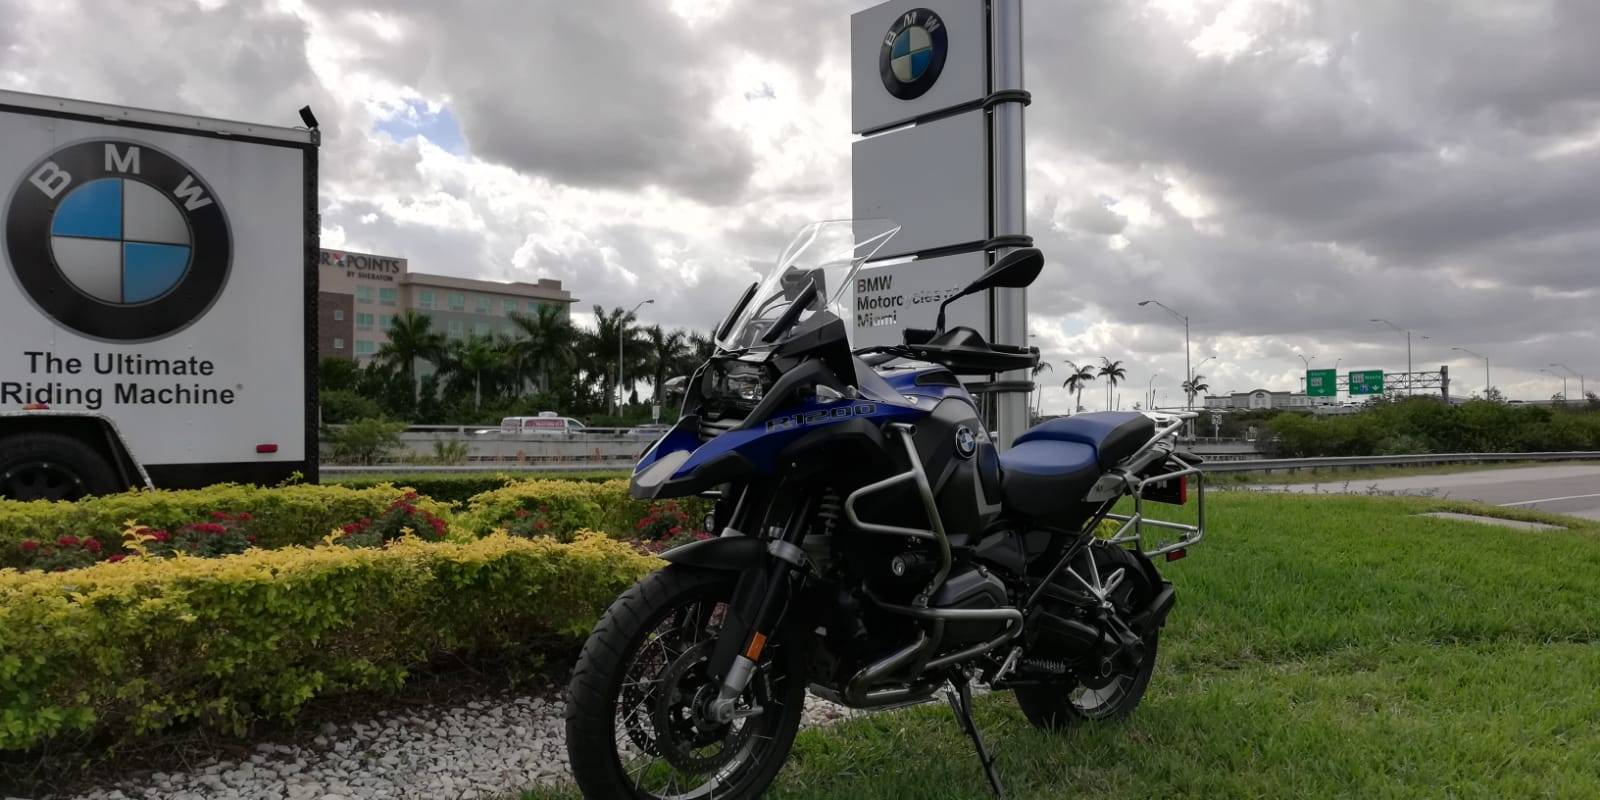 Used 2015 BMW R 1200 GSA for sale, BMW R 1200GSA for sale, BMW Motorcycle R1200GSA, used BMW Adventure, Dual, GS, BMW. BMW Motorcycles of Miami, Motorcycles of Miami, Motorcycles Miami, New Motorcycles, Used Motorcycles, pre-owned. #BMWMotorcyclesOfMiami #MotorcyclesOfMiami. - Photo 4